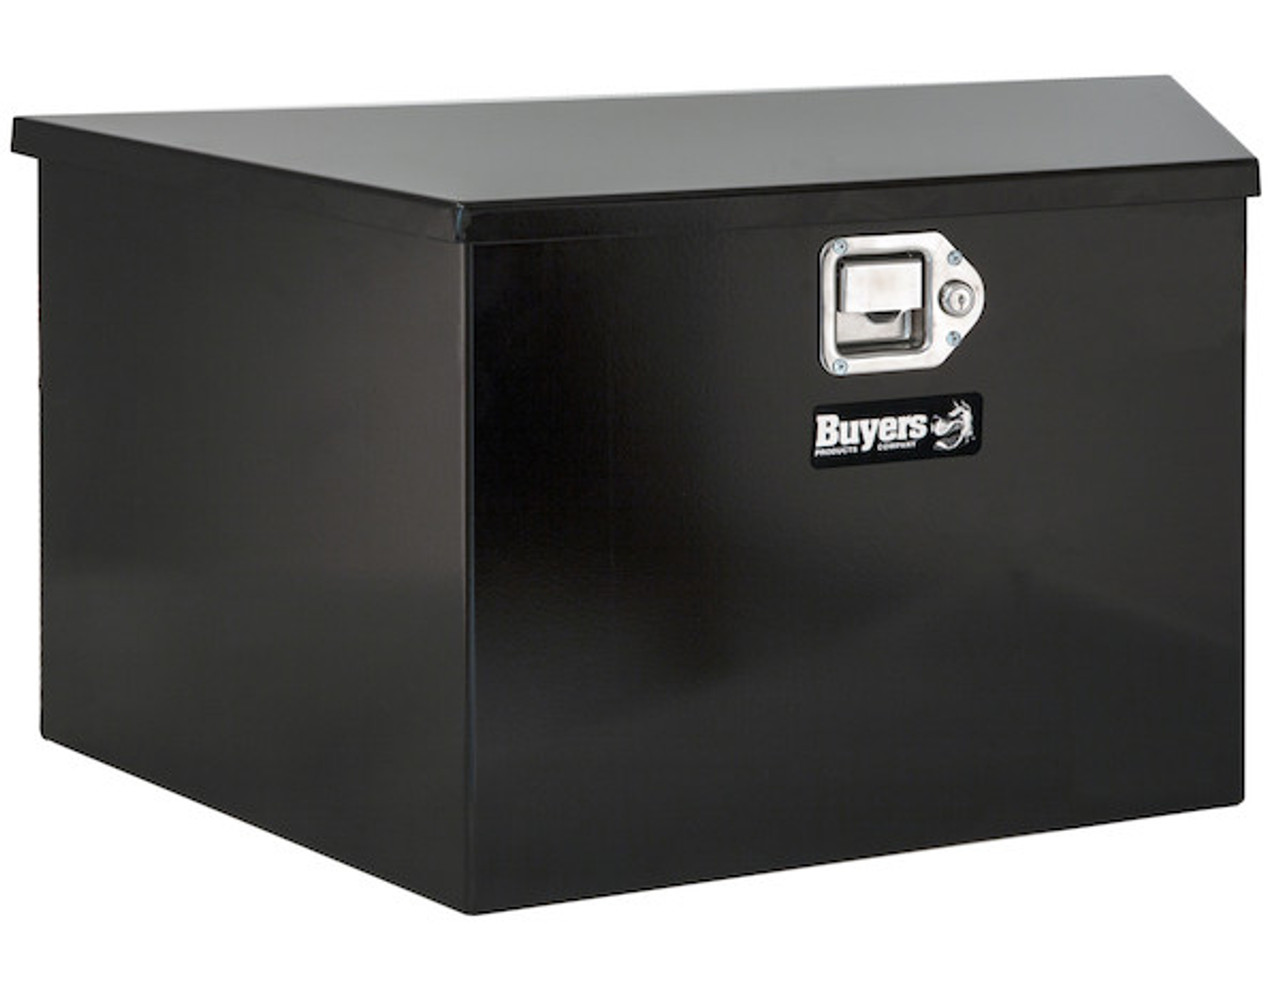 """1701280 BUYERS PRODUCTS COMMERCIAL BLACK STEEL TRAILER TONGUE TRUCK TOOLBOX 16.38""""Hx15""""Dx35.25""""W"""